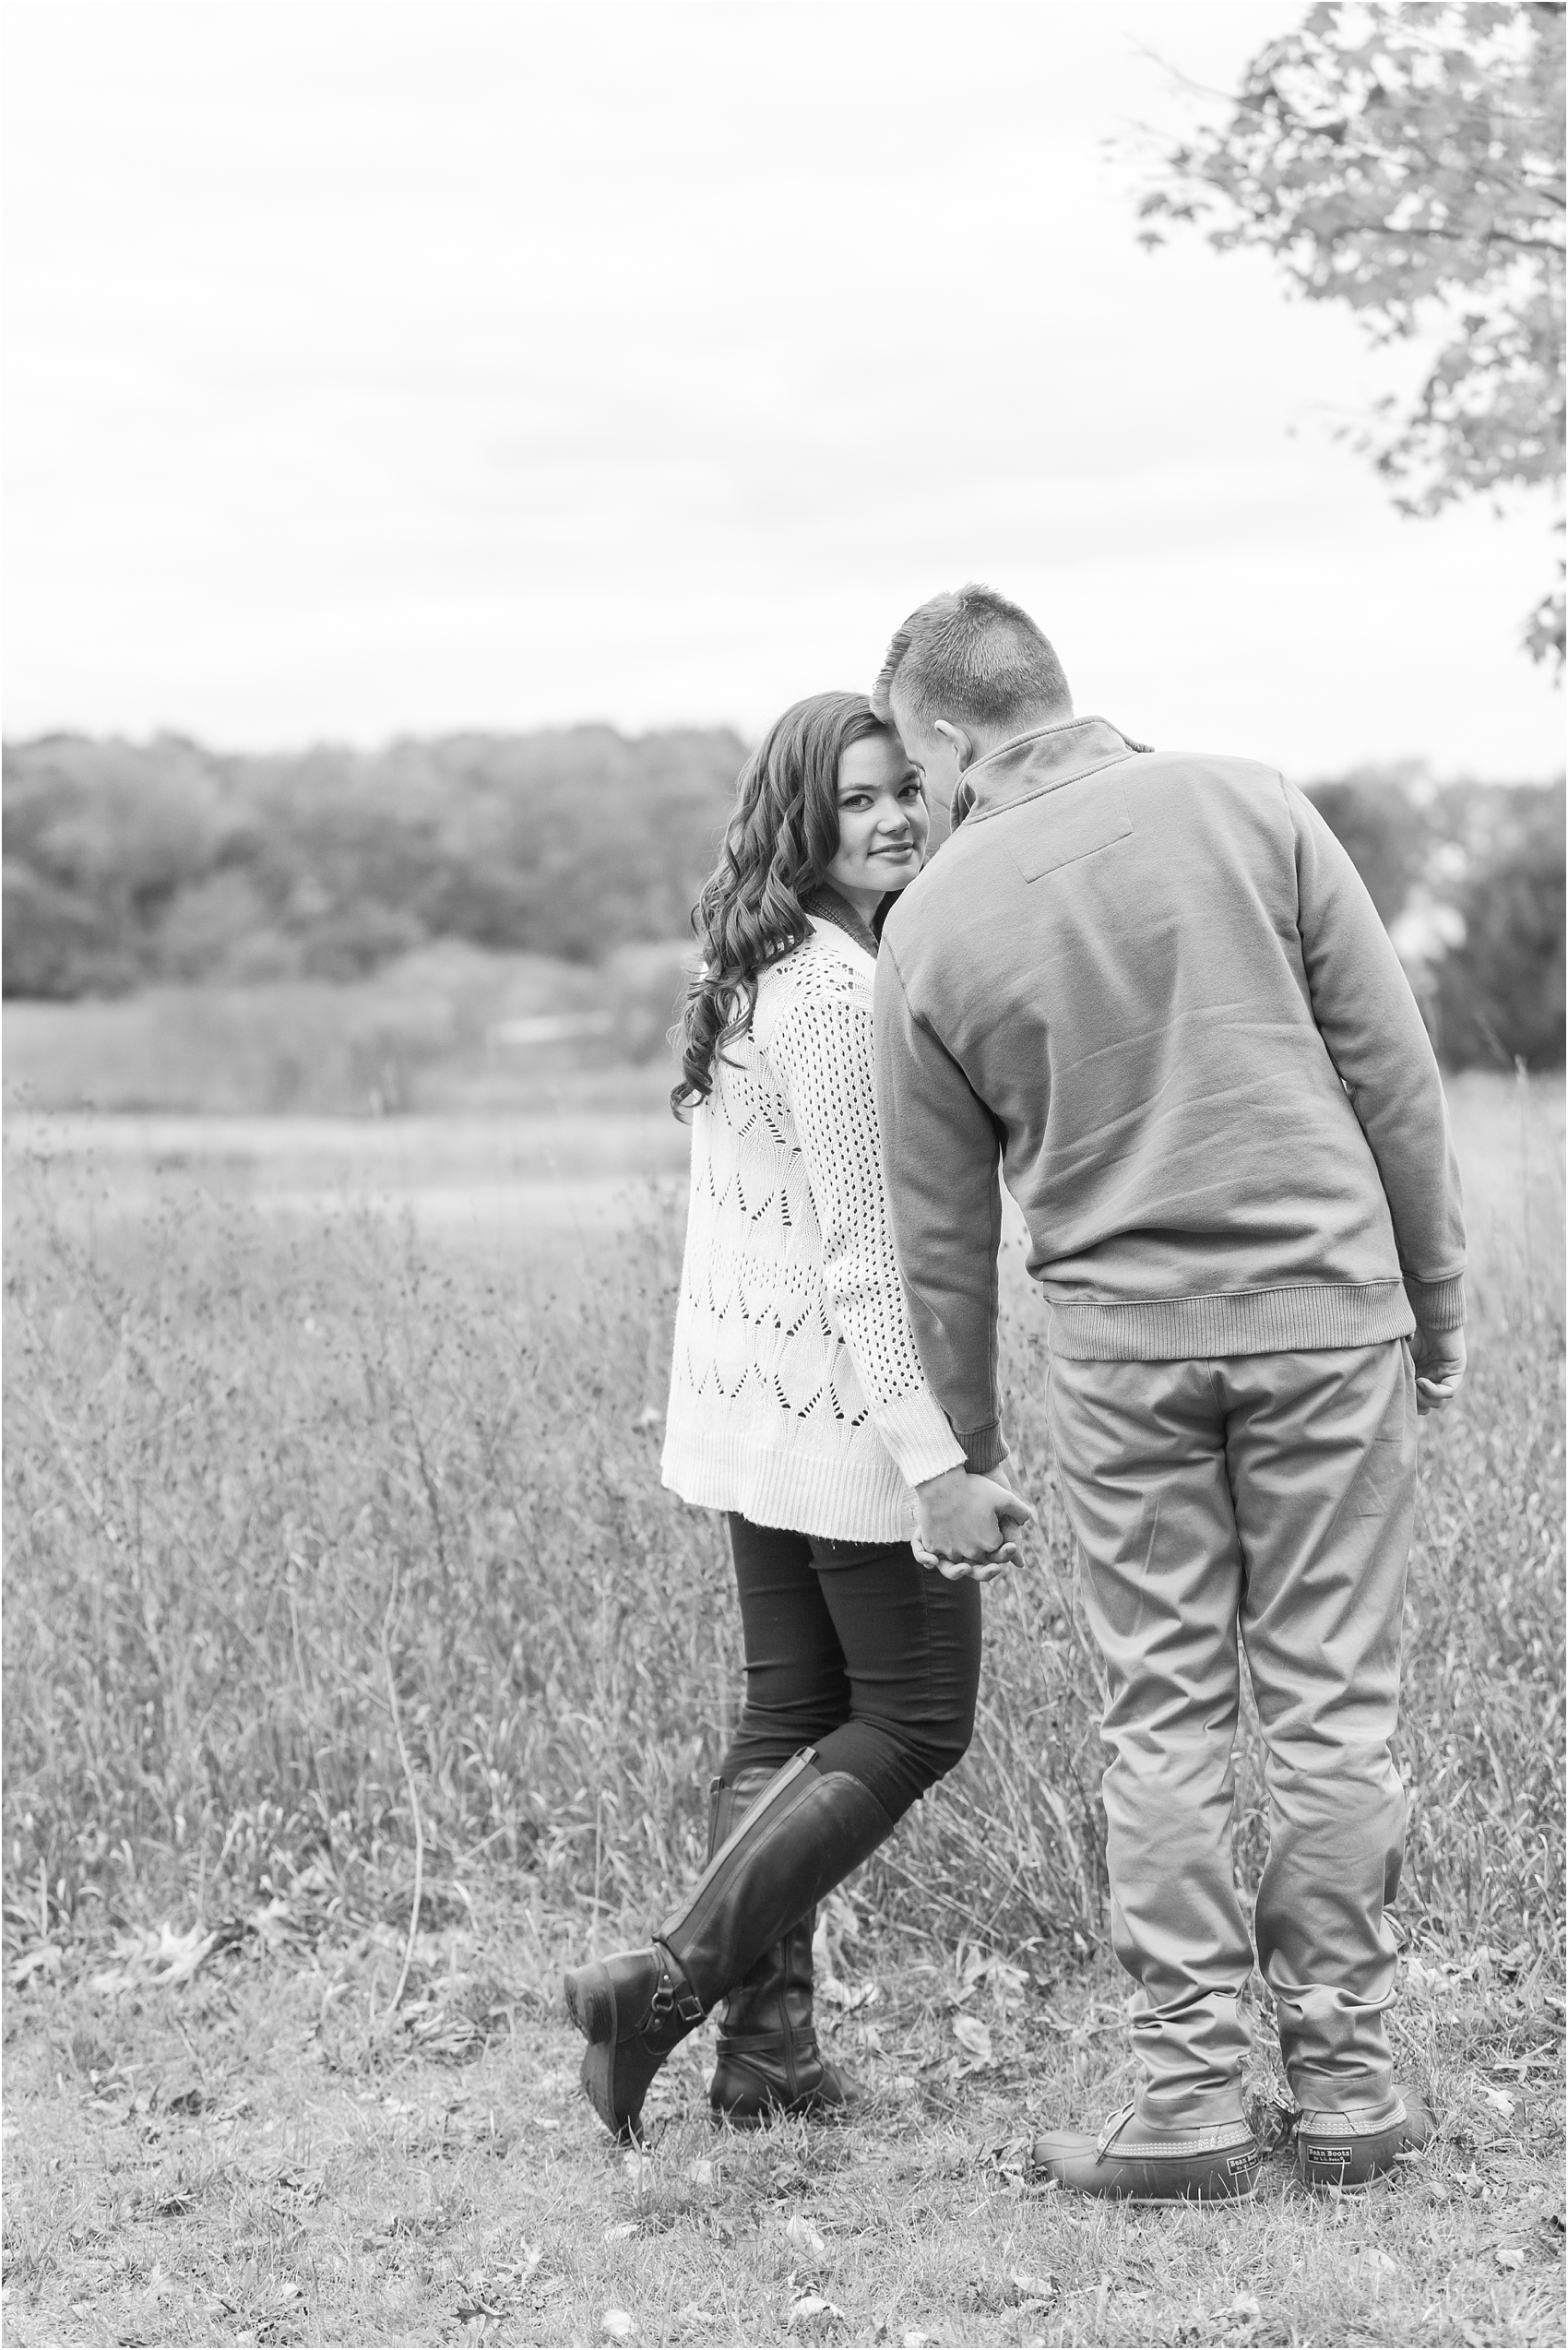 colorful-fall-engagement-photos-at-the-lake-at-huron-meadows-metropark-in-brighton-michigan-by-courtney-carolyn-photography_0034.jpg